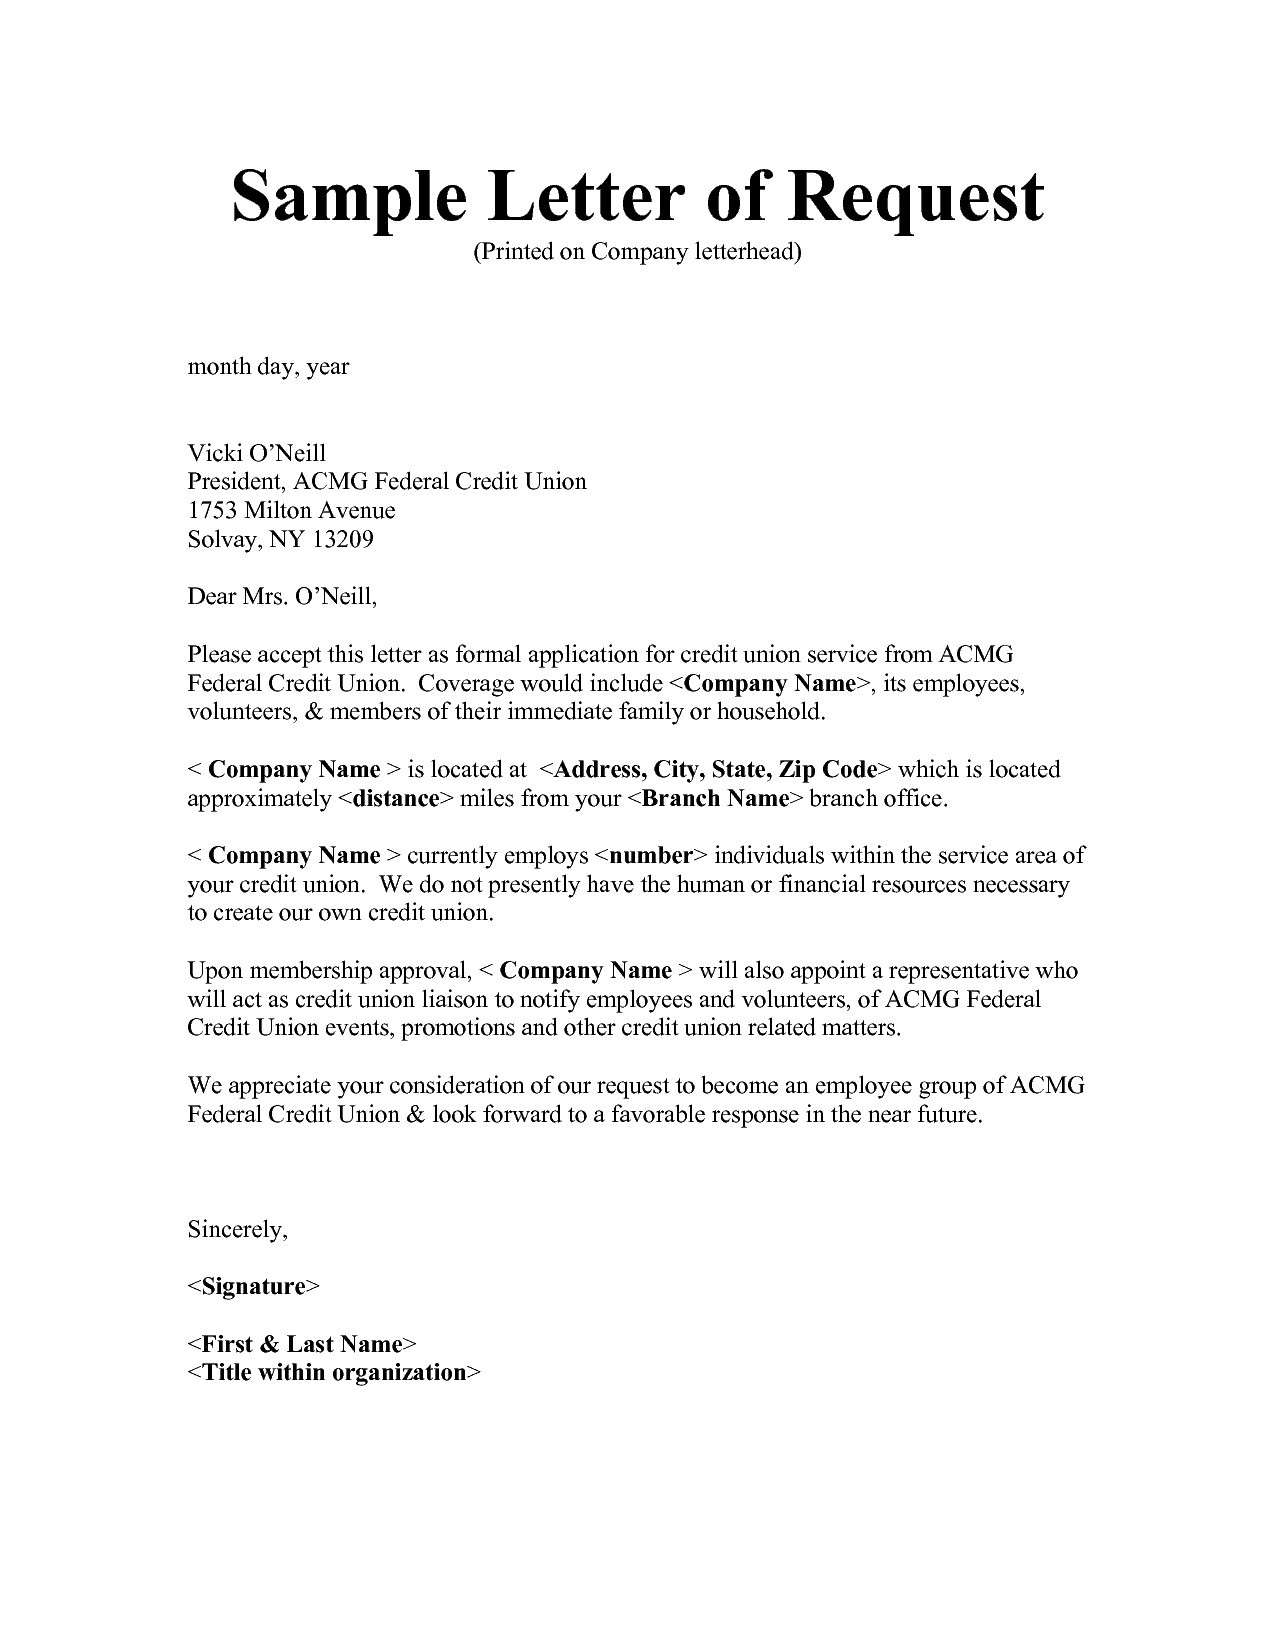 Rent Reduction Letter Template - 7 Give Rise to Late Rent Notice Template Print Wgftlvu